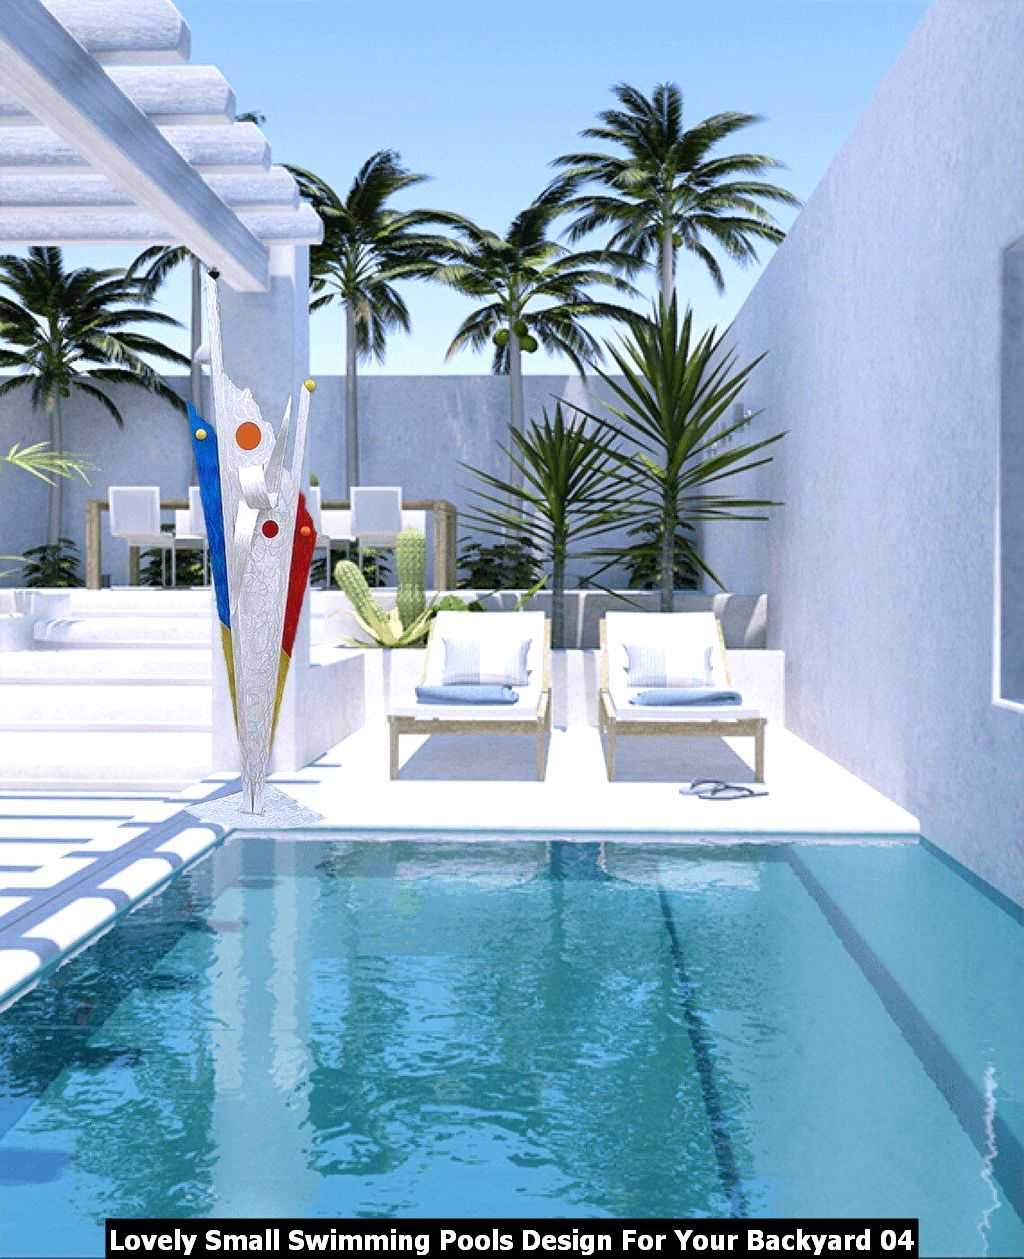 Lovely Small Swimming Pools Design For Your Backyard 04